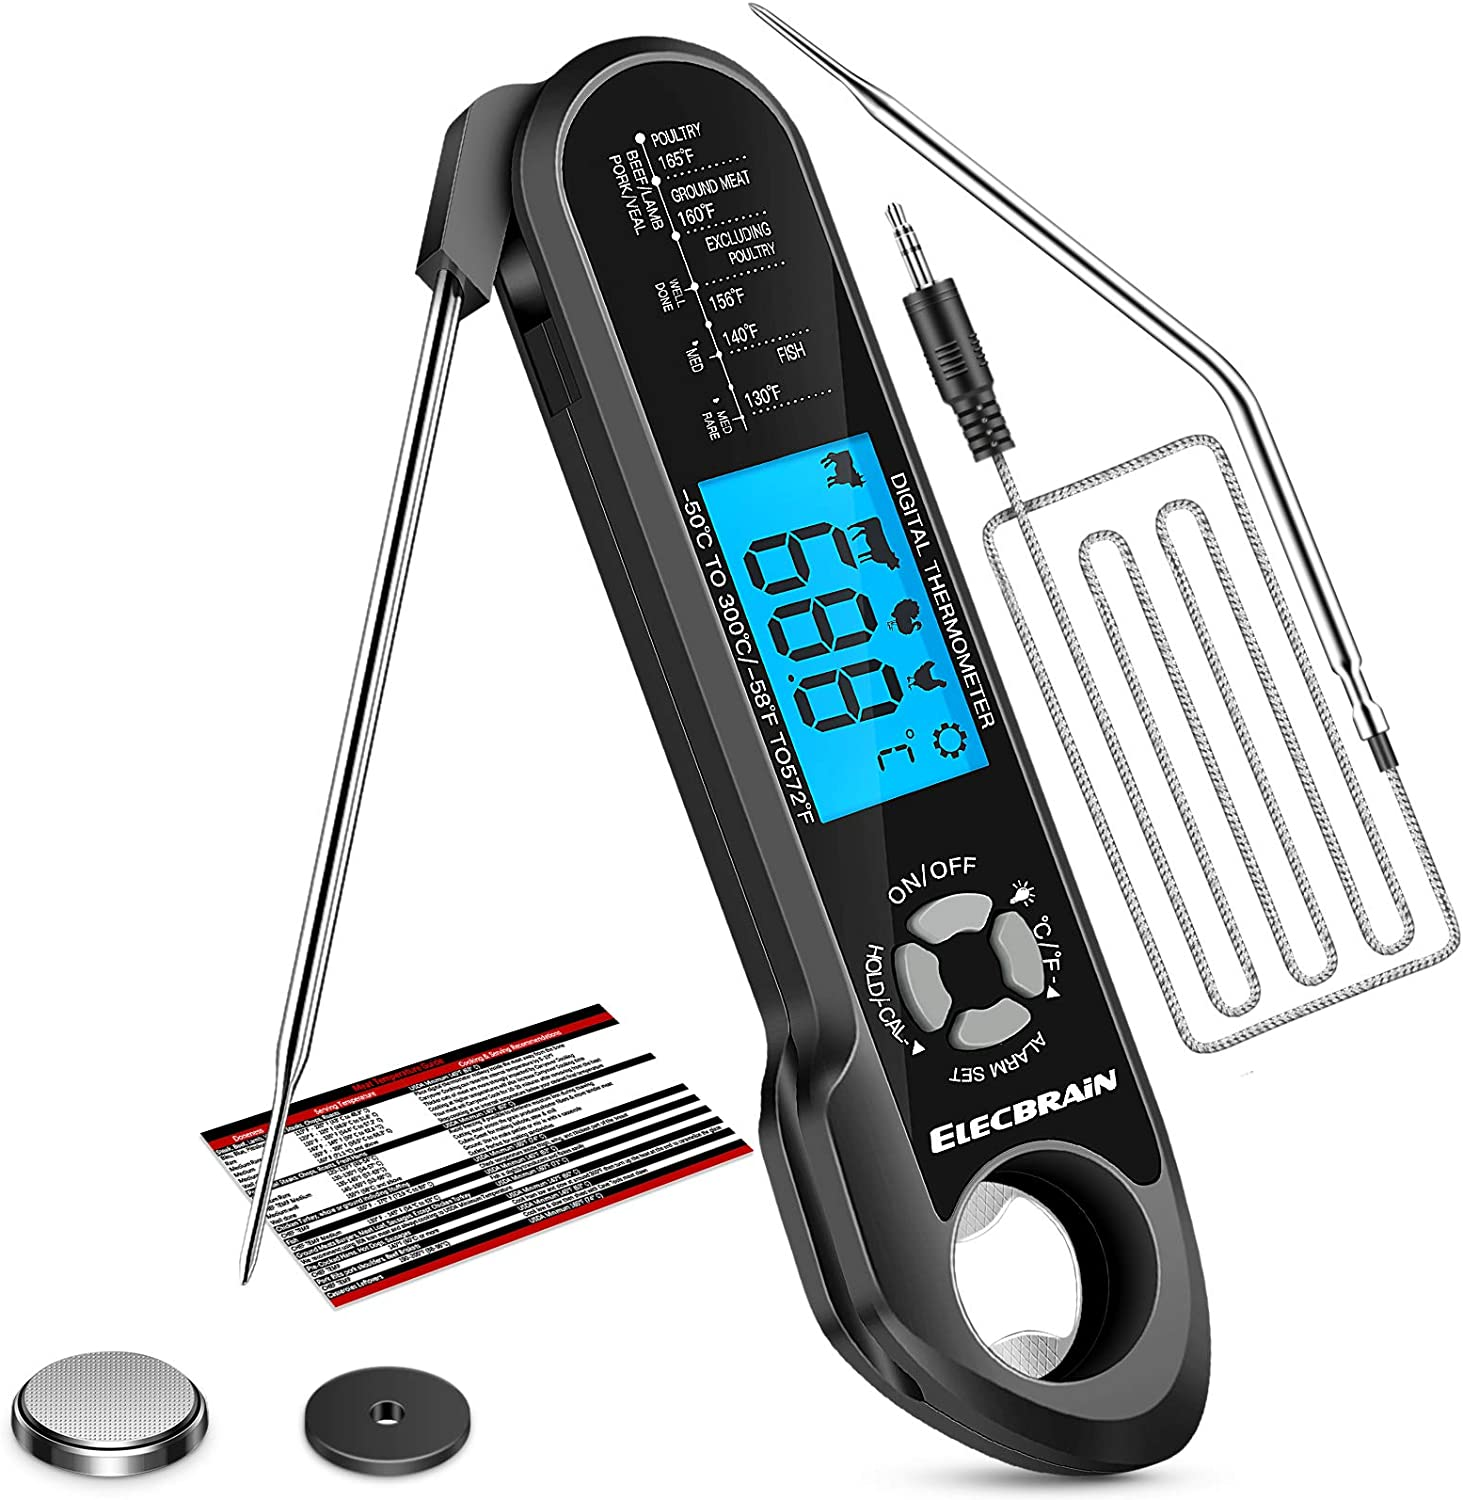 2 in 1 Dual Probe Digital Instant Read Food Meat Thermometer with Backlight, Alarm, Magnet & Corkscrew Function,Food Thermometer for Oven, Deep Frying, Outdoor BBQ, Candy, Liquids and Baking